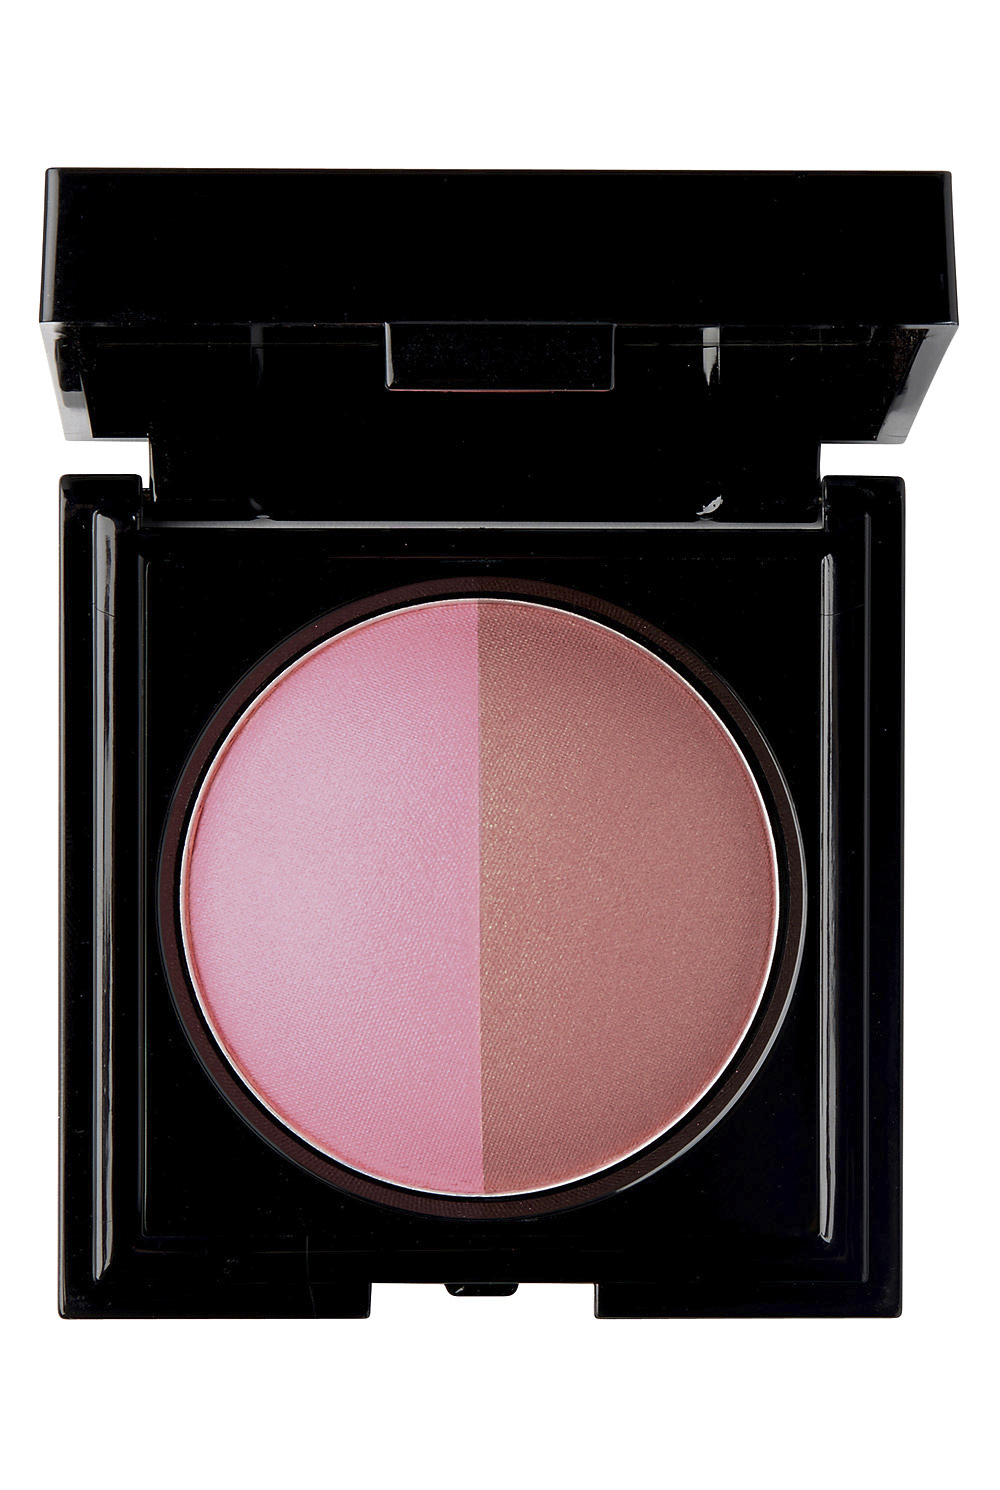 60172154_witcherybeauty-cheek-palette-in-crimson-rrp21-90